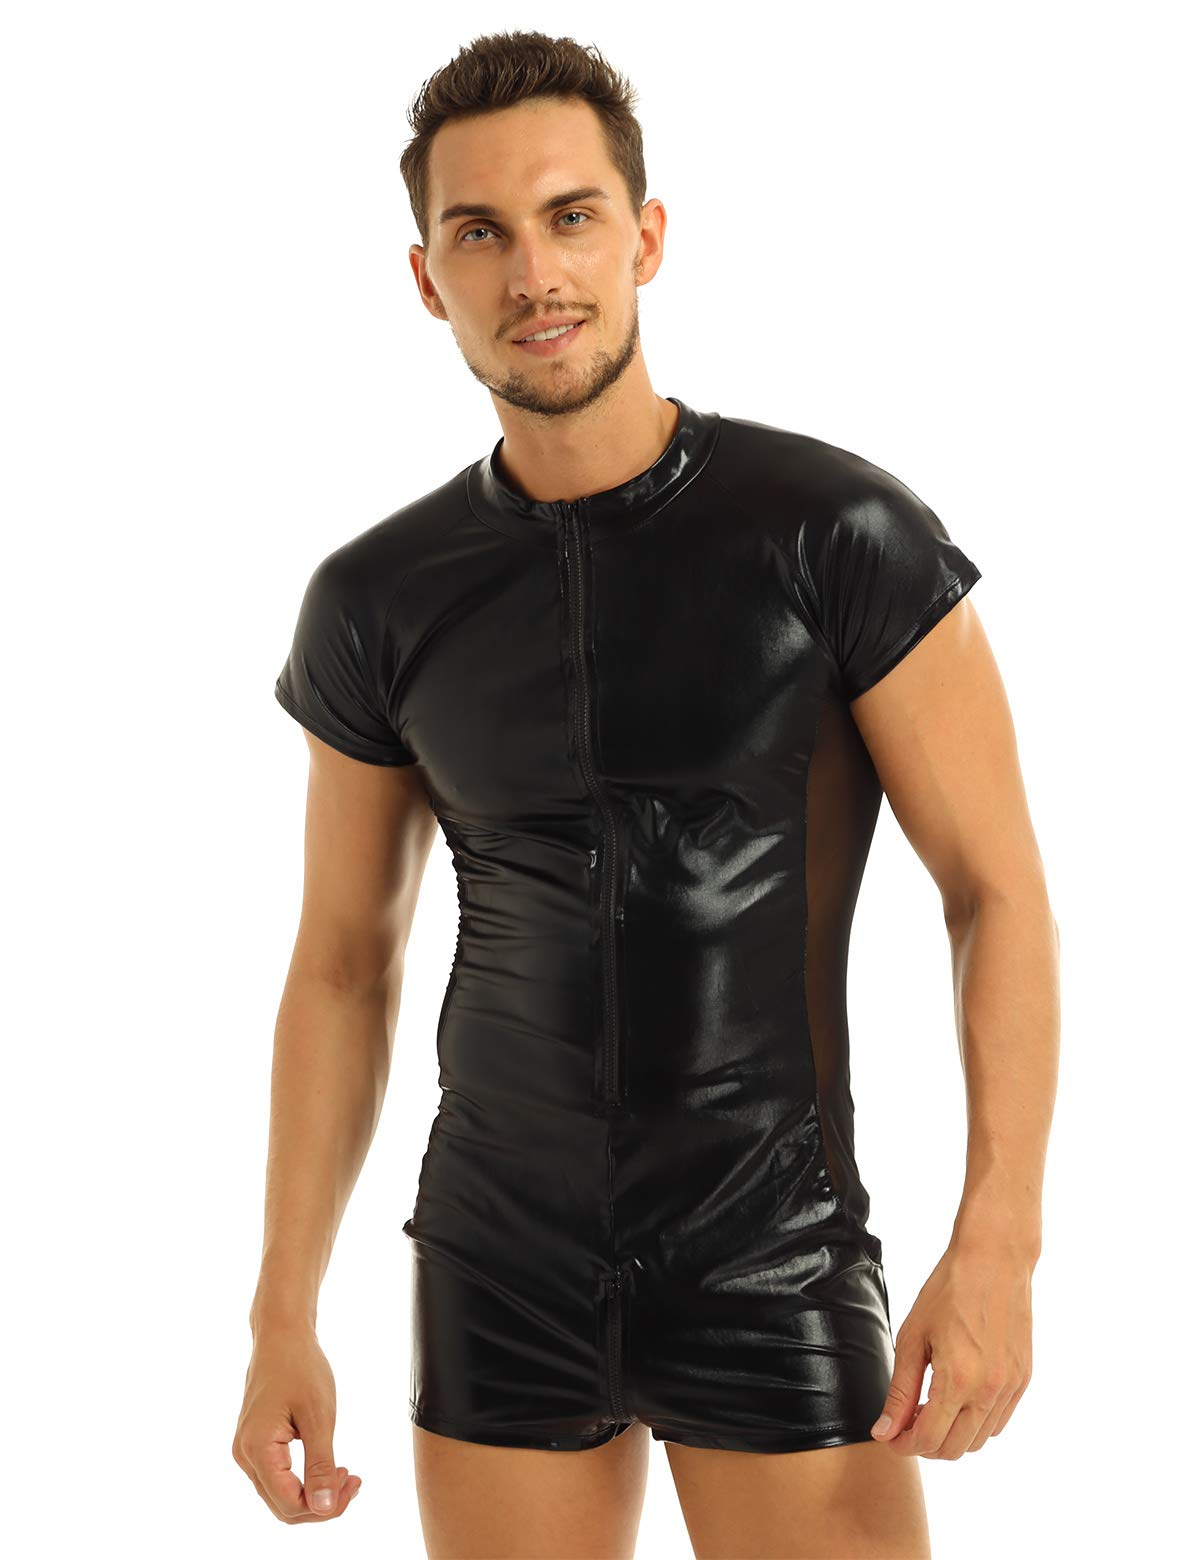 Feeshow Mens Faux Leather Mesh Short Sleeves Zipper One Piece Leotard Bodysuit Catsuit Black M